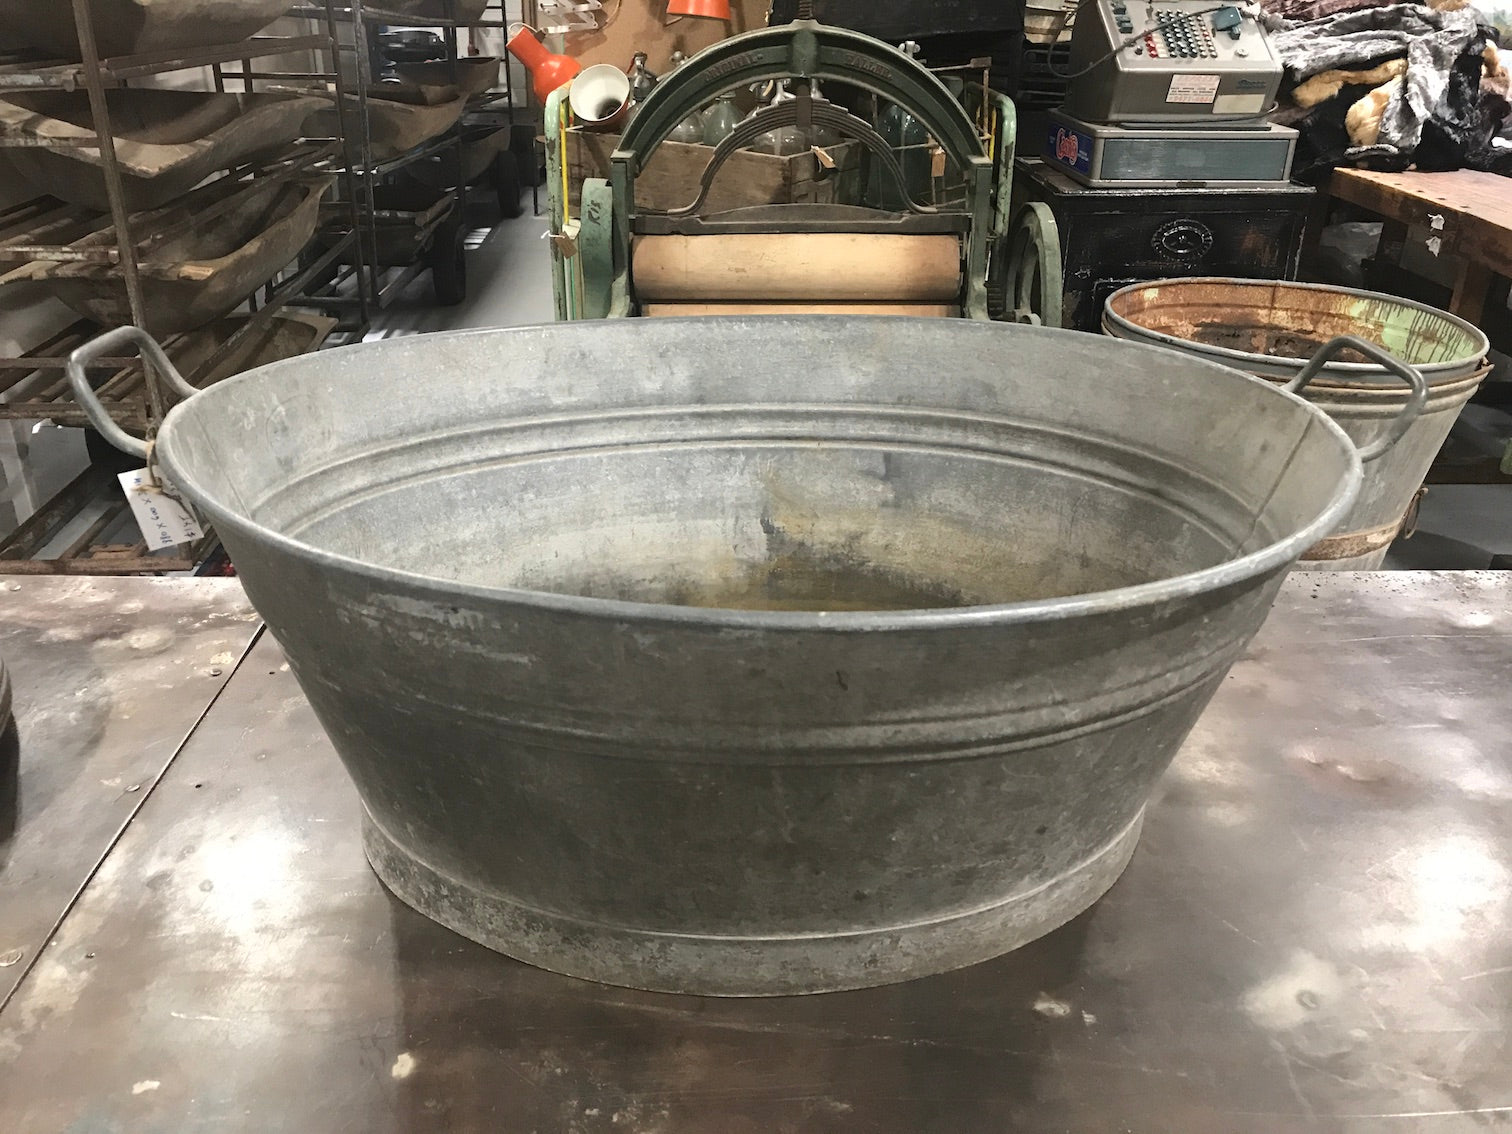 Vintage industrial European galvanized wash tubs #2230